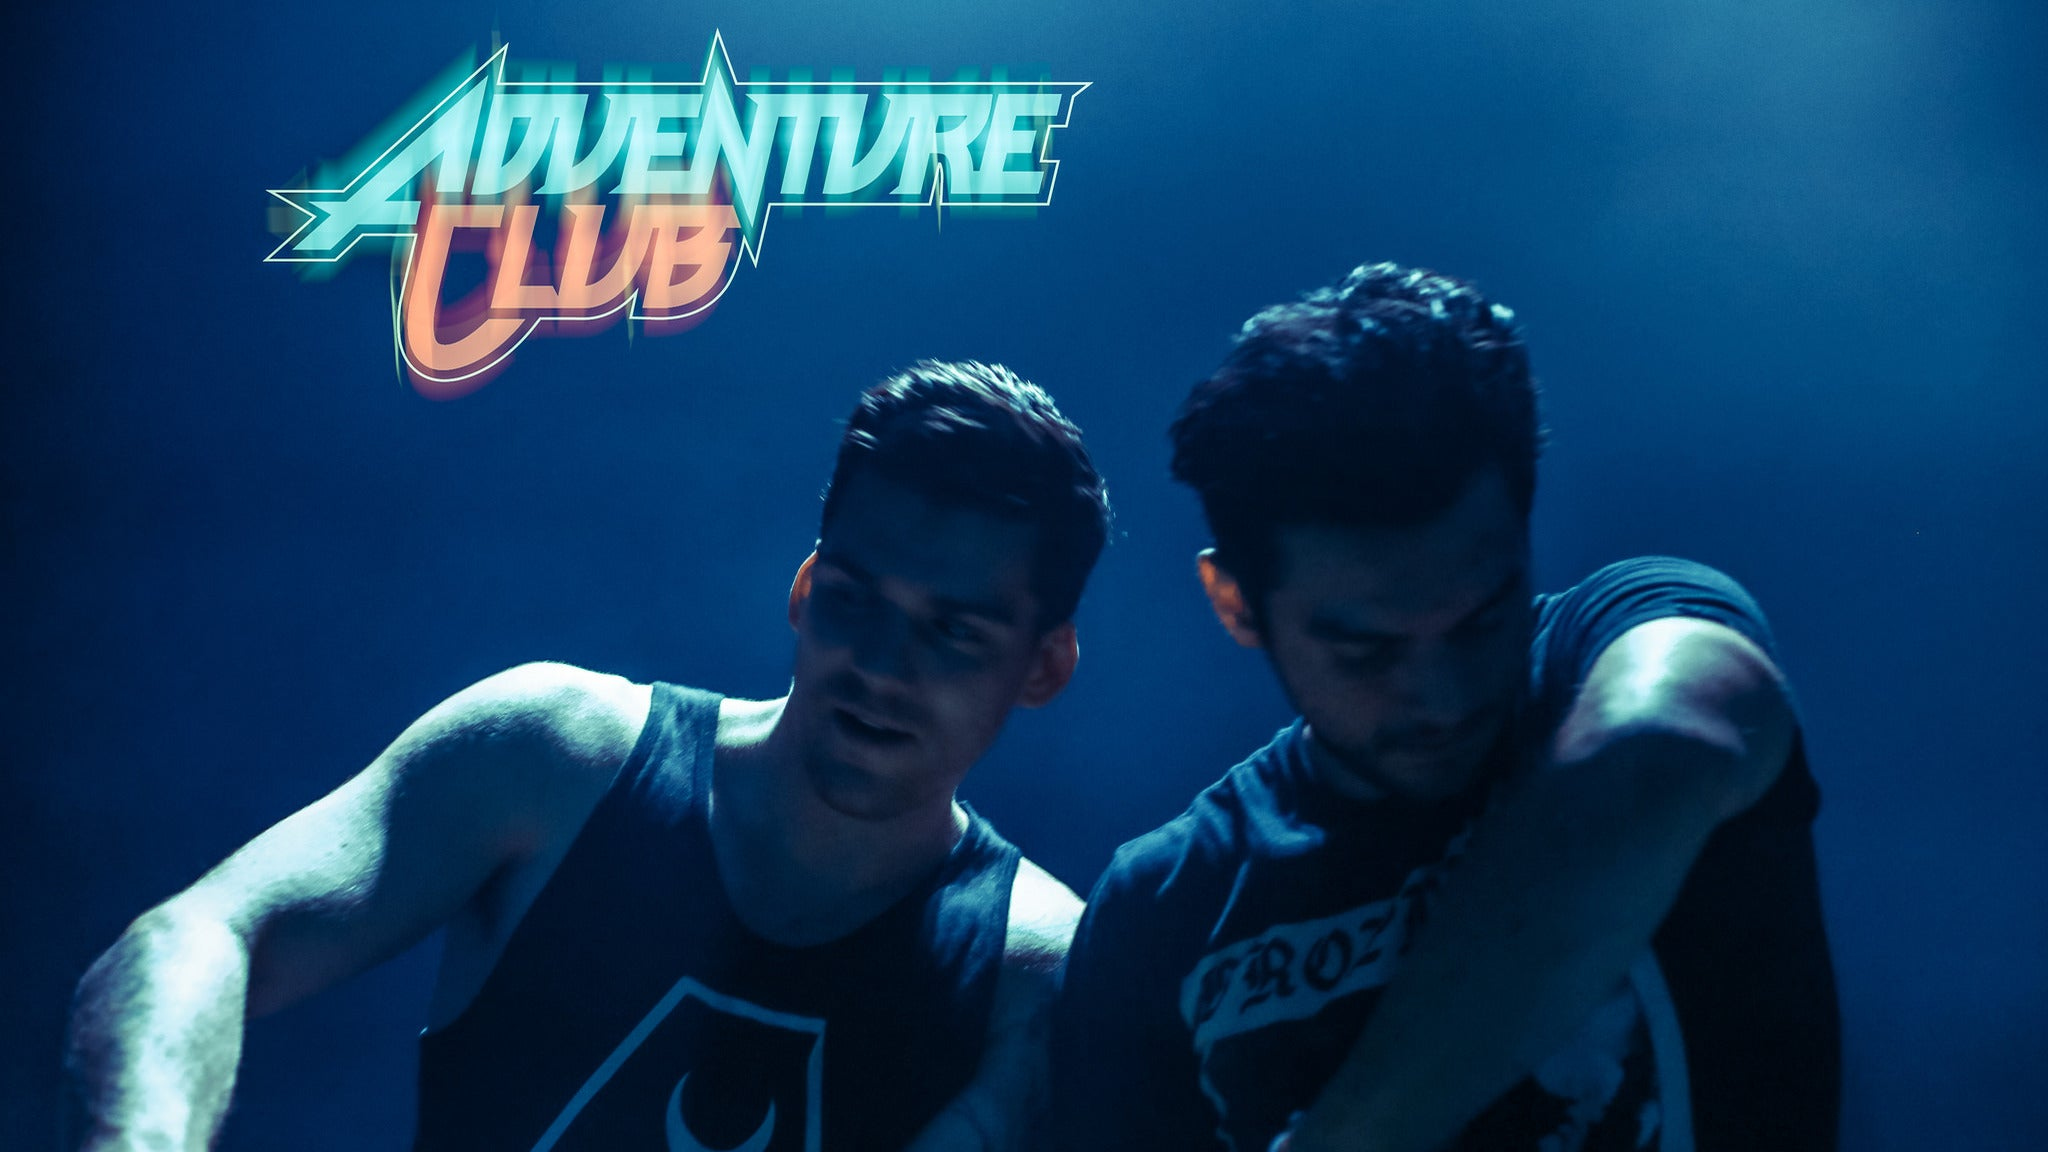 Adventure Club at Bourbon Hall